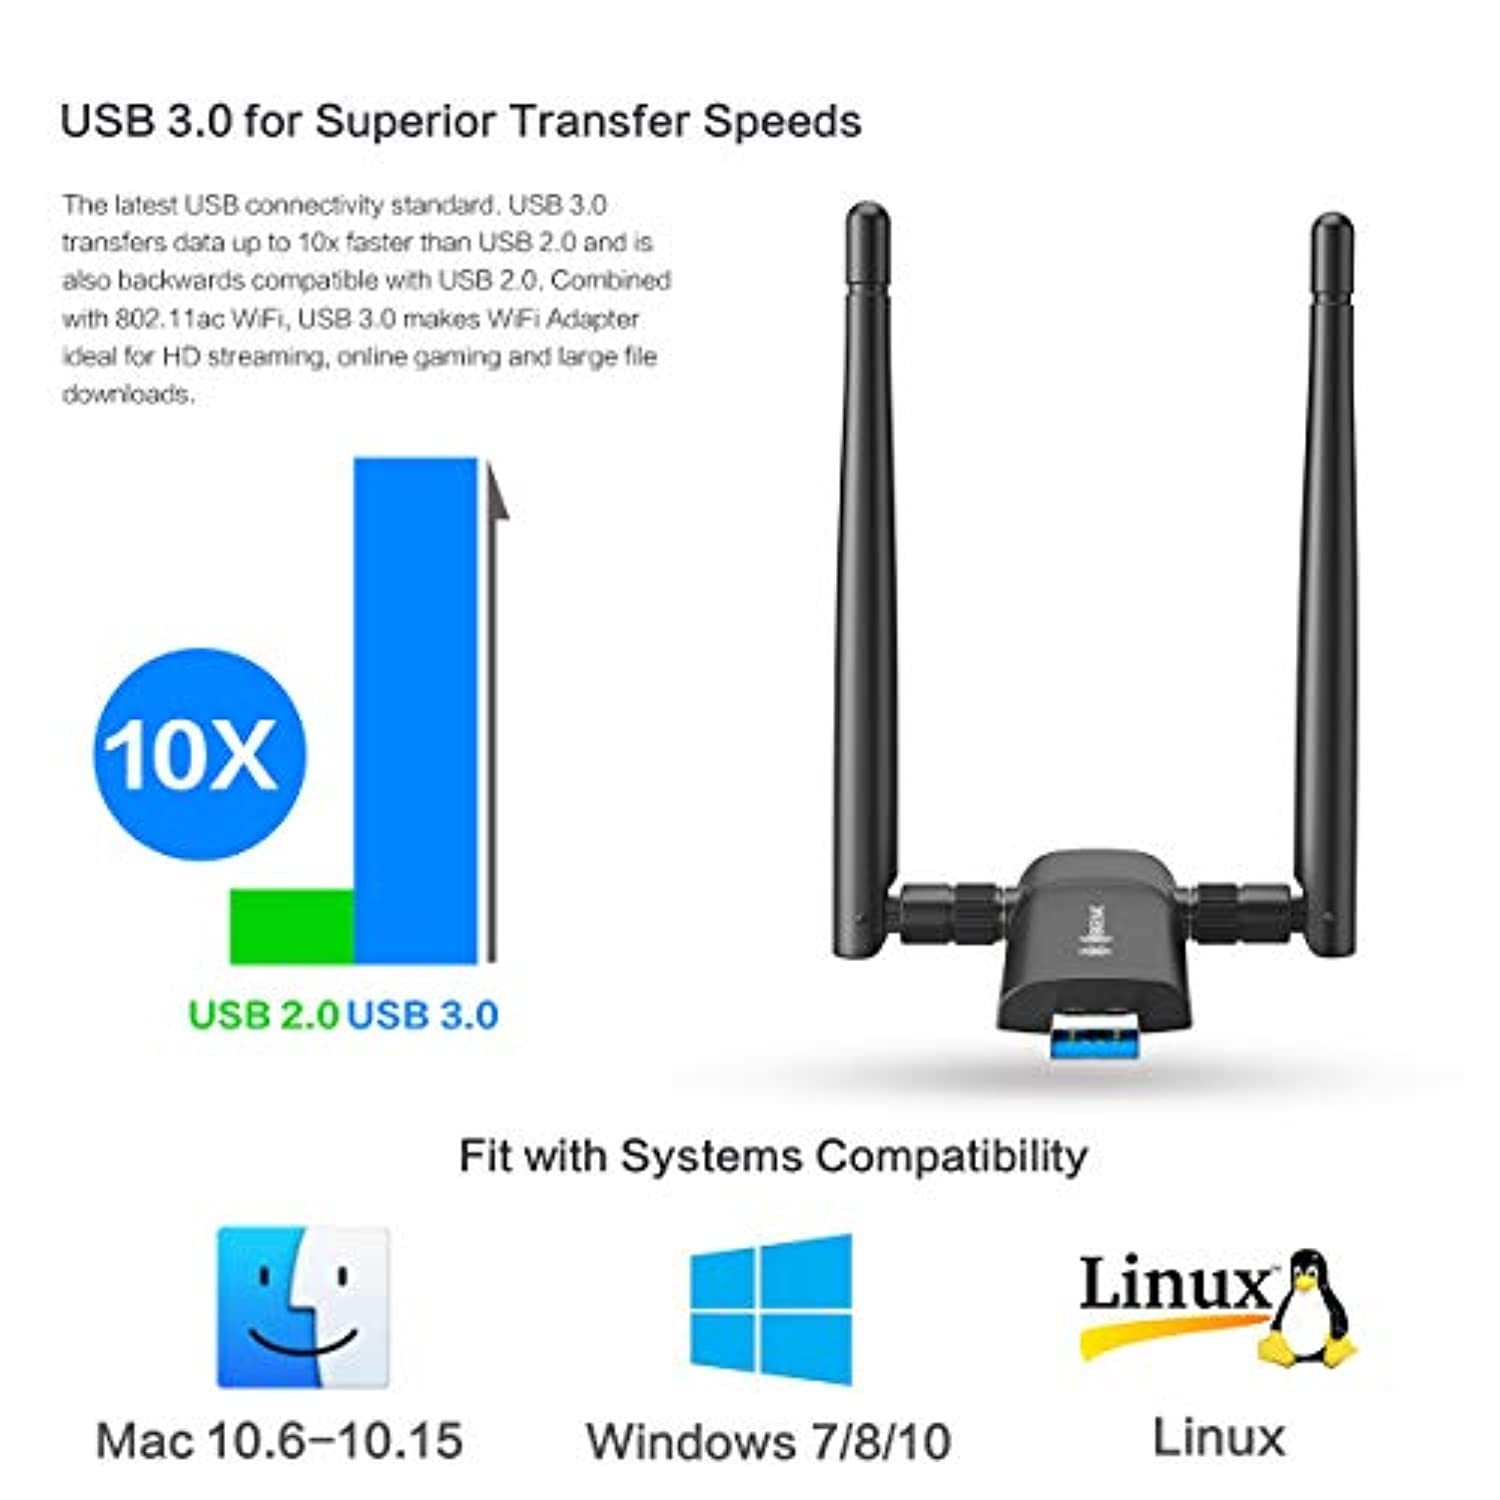 Classier: Buy Nineplus Wireless USB WiFi Adapter for PC - 802.11AC 1200Mbps Dual 5Dbi Antennas 5G/2.4G WiFi USB for PC Desktop Laptop MAC Windows 10/8/8.1/7/Vista/XP/Mac10.6/10.13, WiFi USB Computer Network Adapters